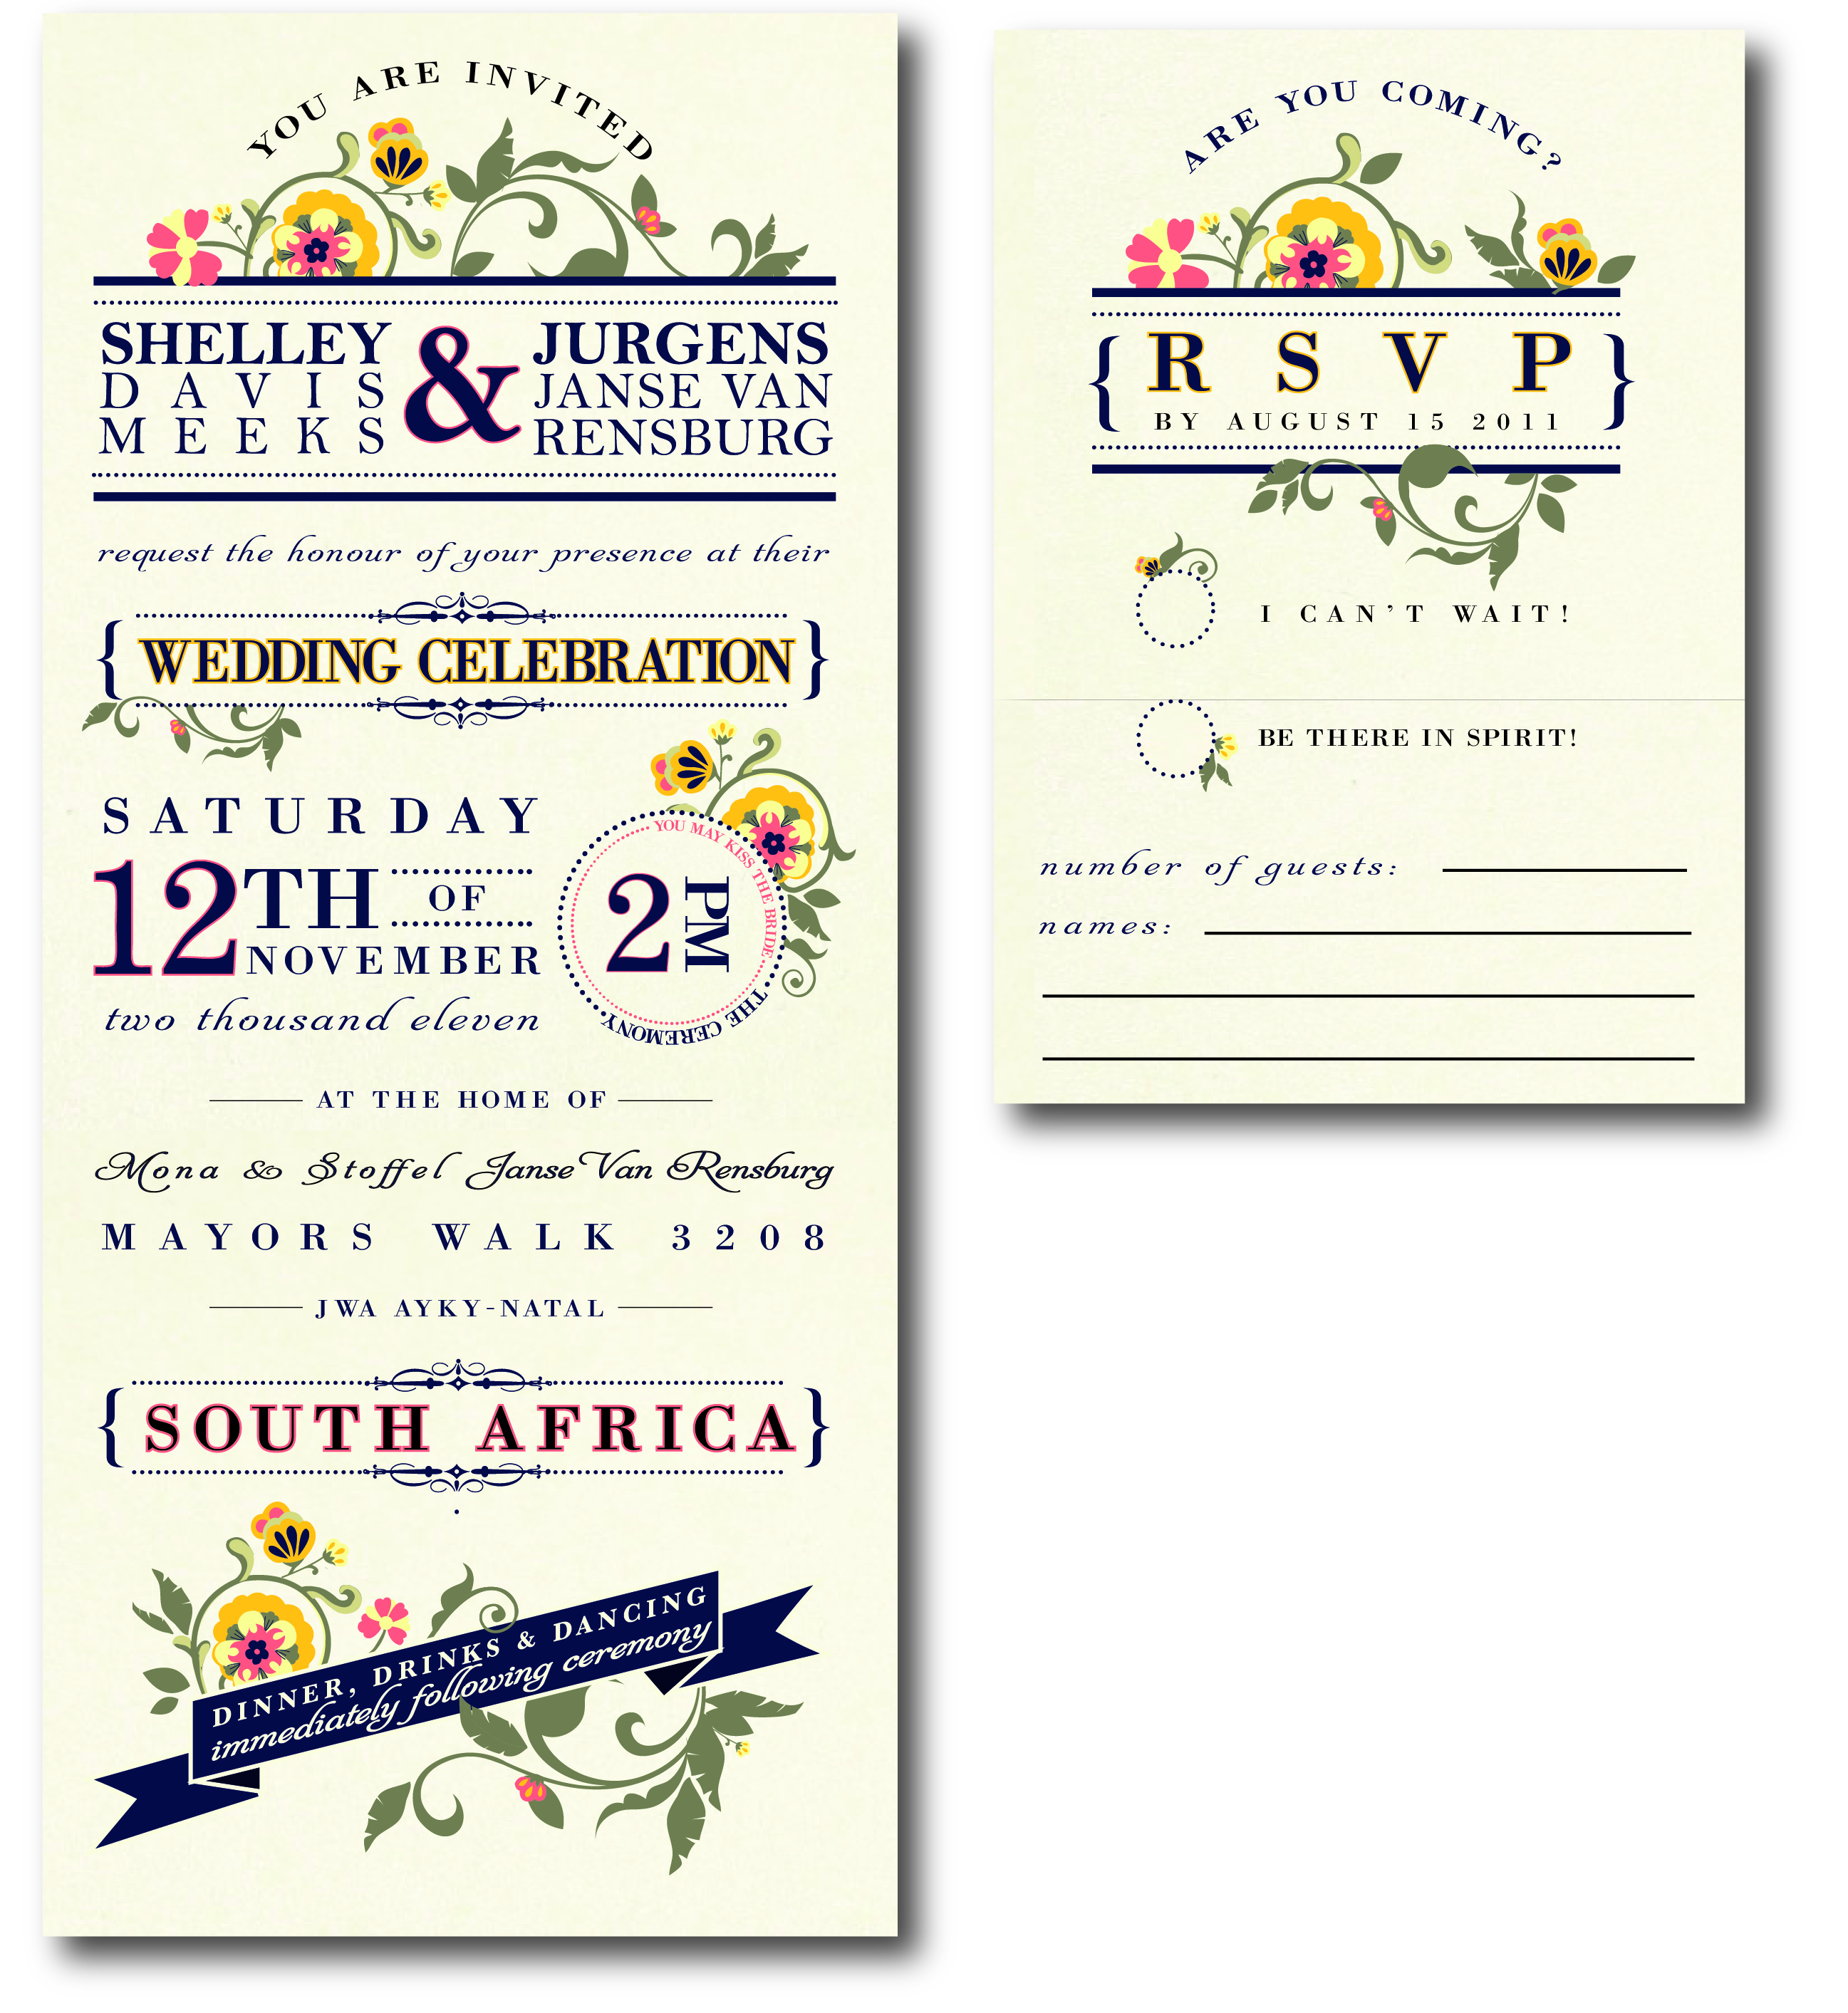 South African Wedding | Tina Alleva Design Work